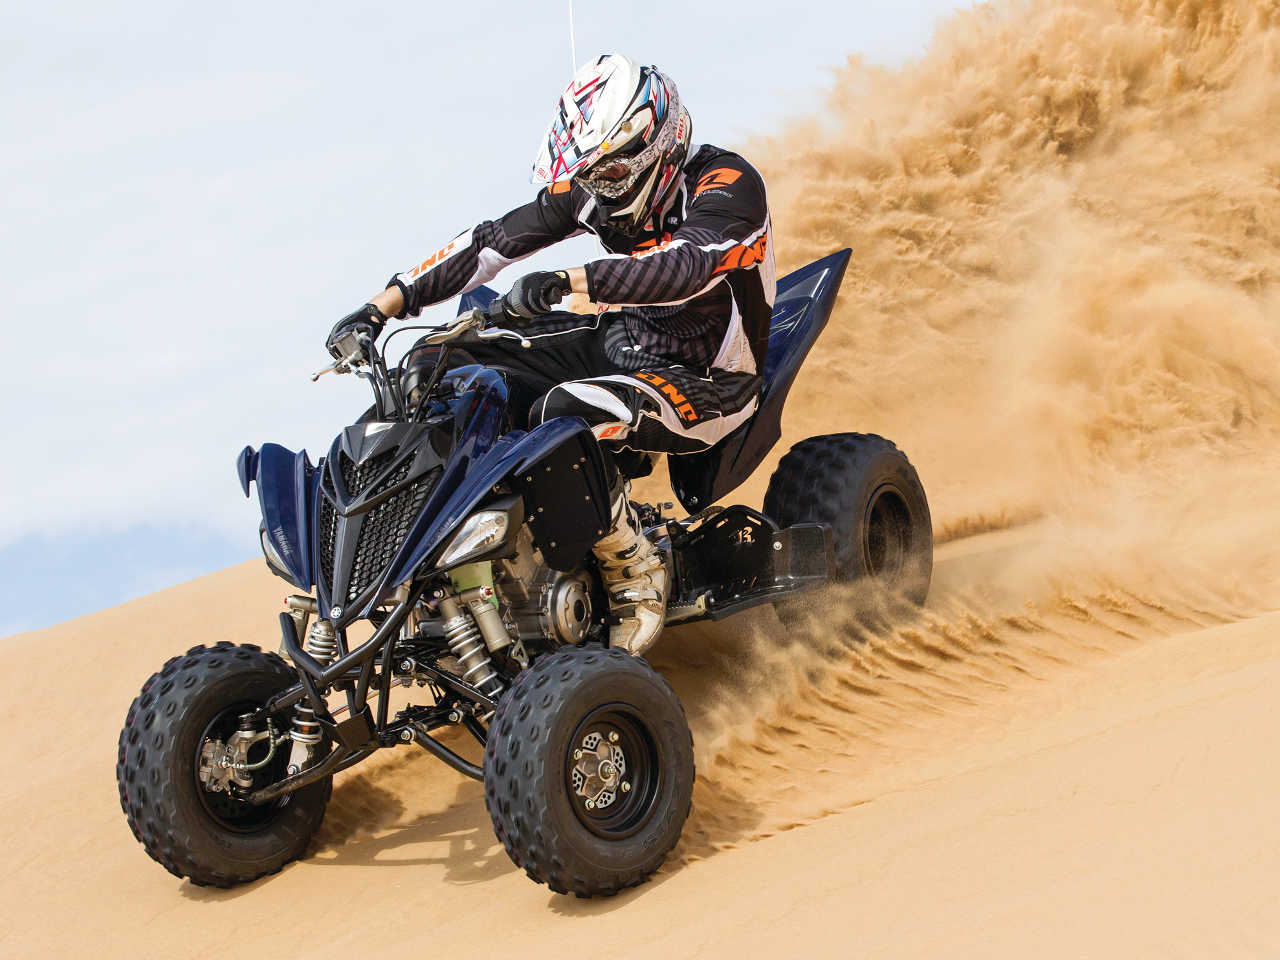 Special Edition Models - 2014 Yamaha YFZ450R SE and Raptor 700R SE ...